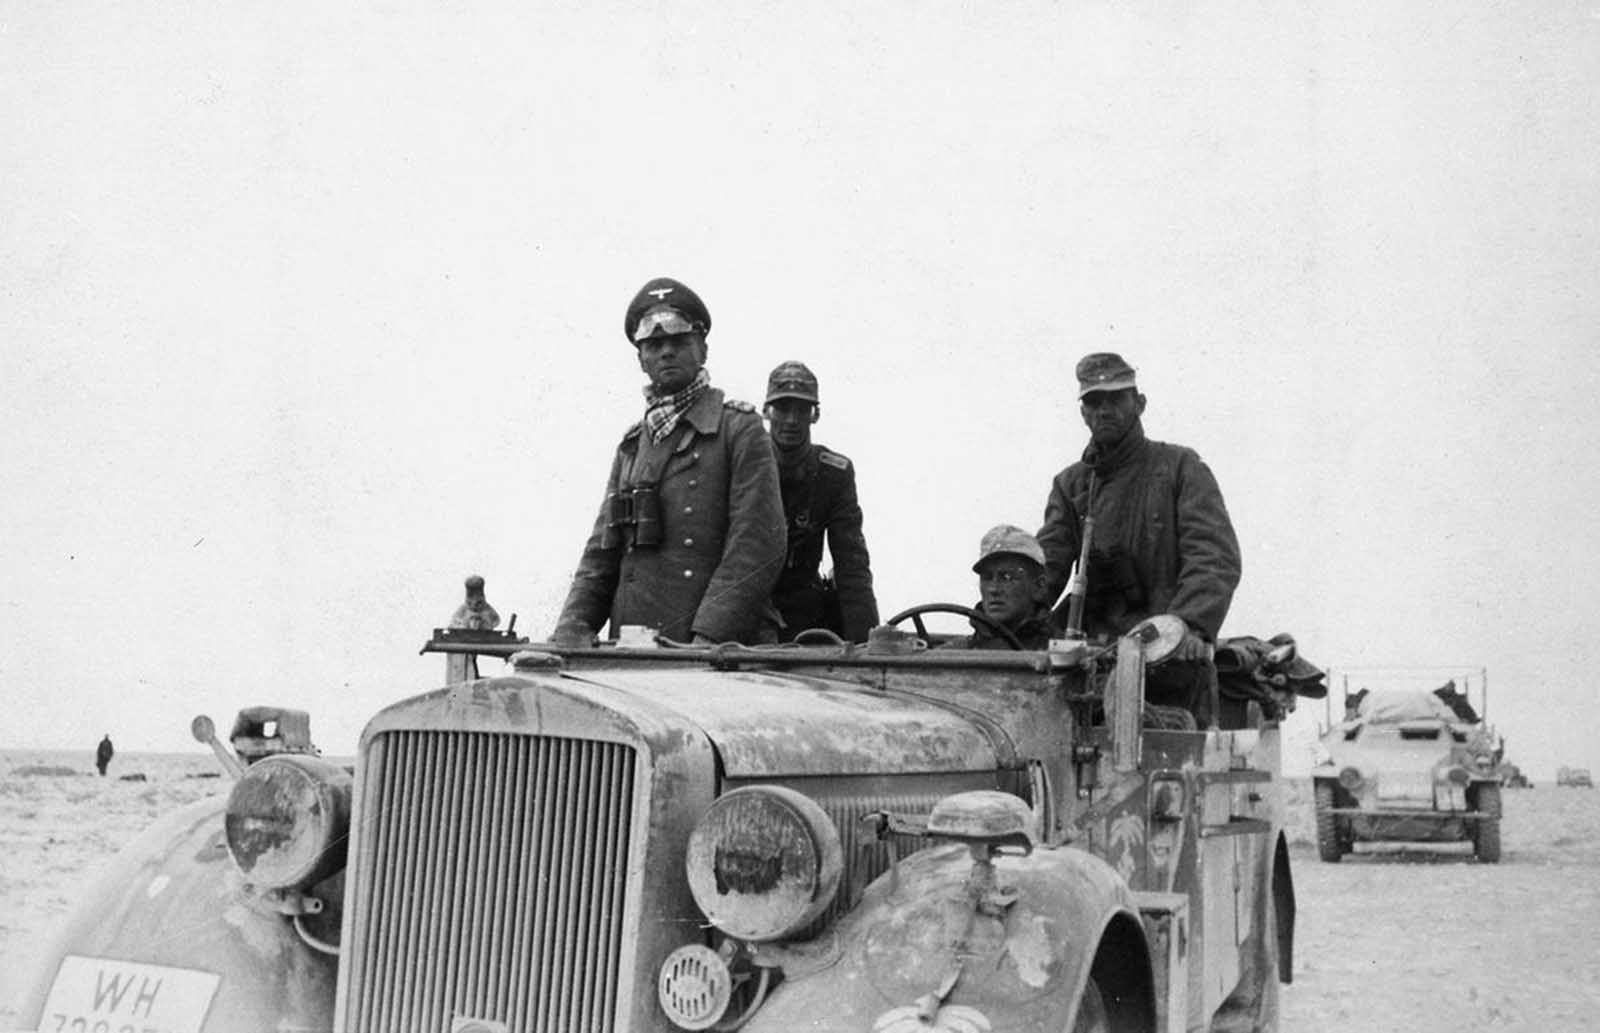 German General Erwin Rommel with the 15th Panzer Division between Tobruk and Sidi Omar. Photo taken in Libya, in 1941.